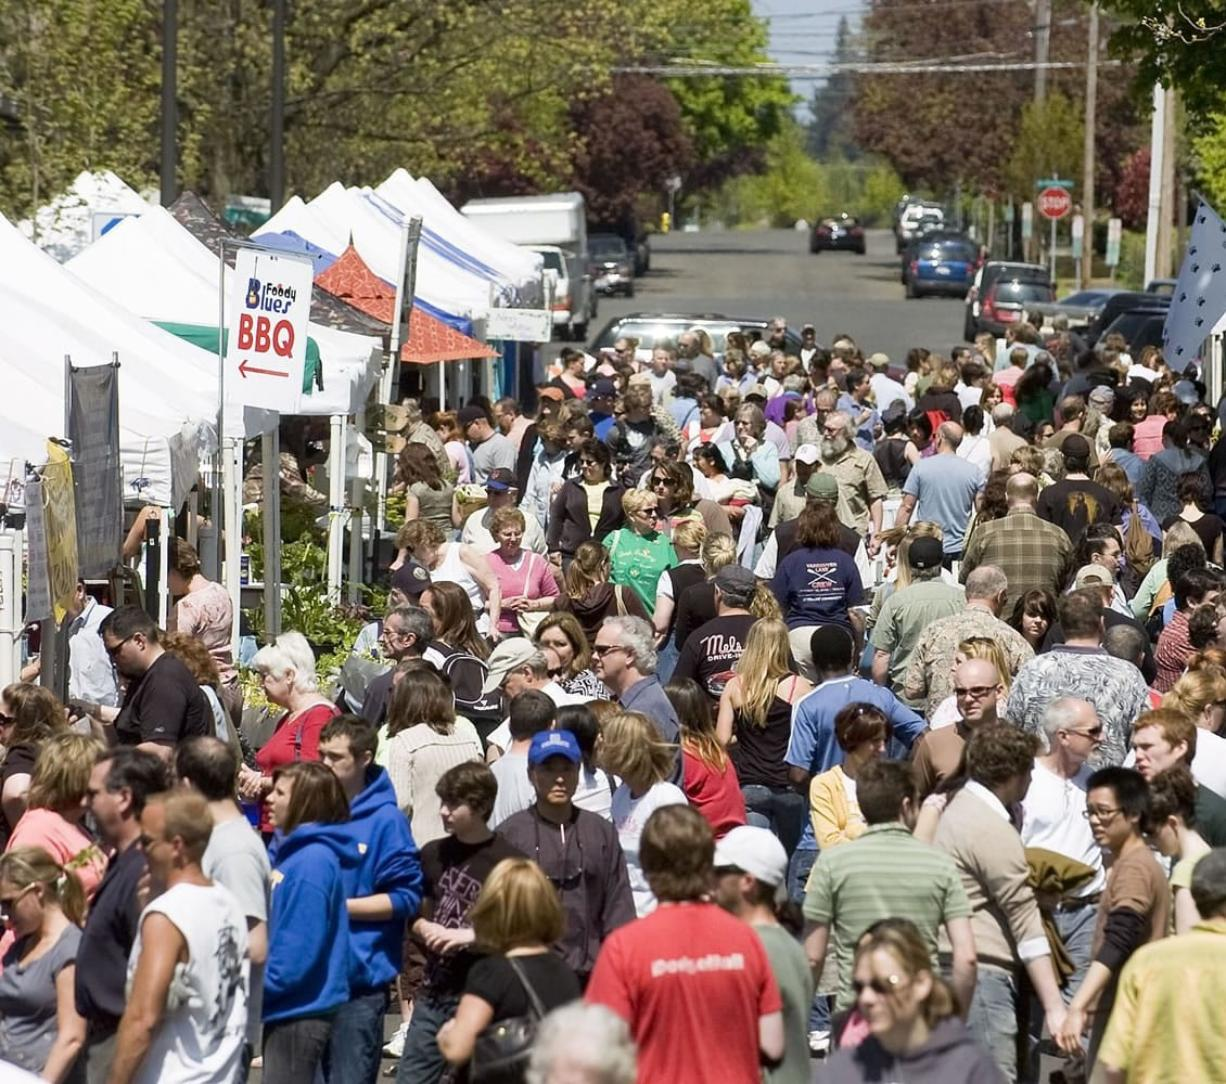 The Washington State Liquor Control board announced Wednesday that the Vancouver Farmers Market in downtown Vancouver likely will be allowed to have samples of beer and wine.